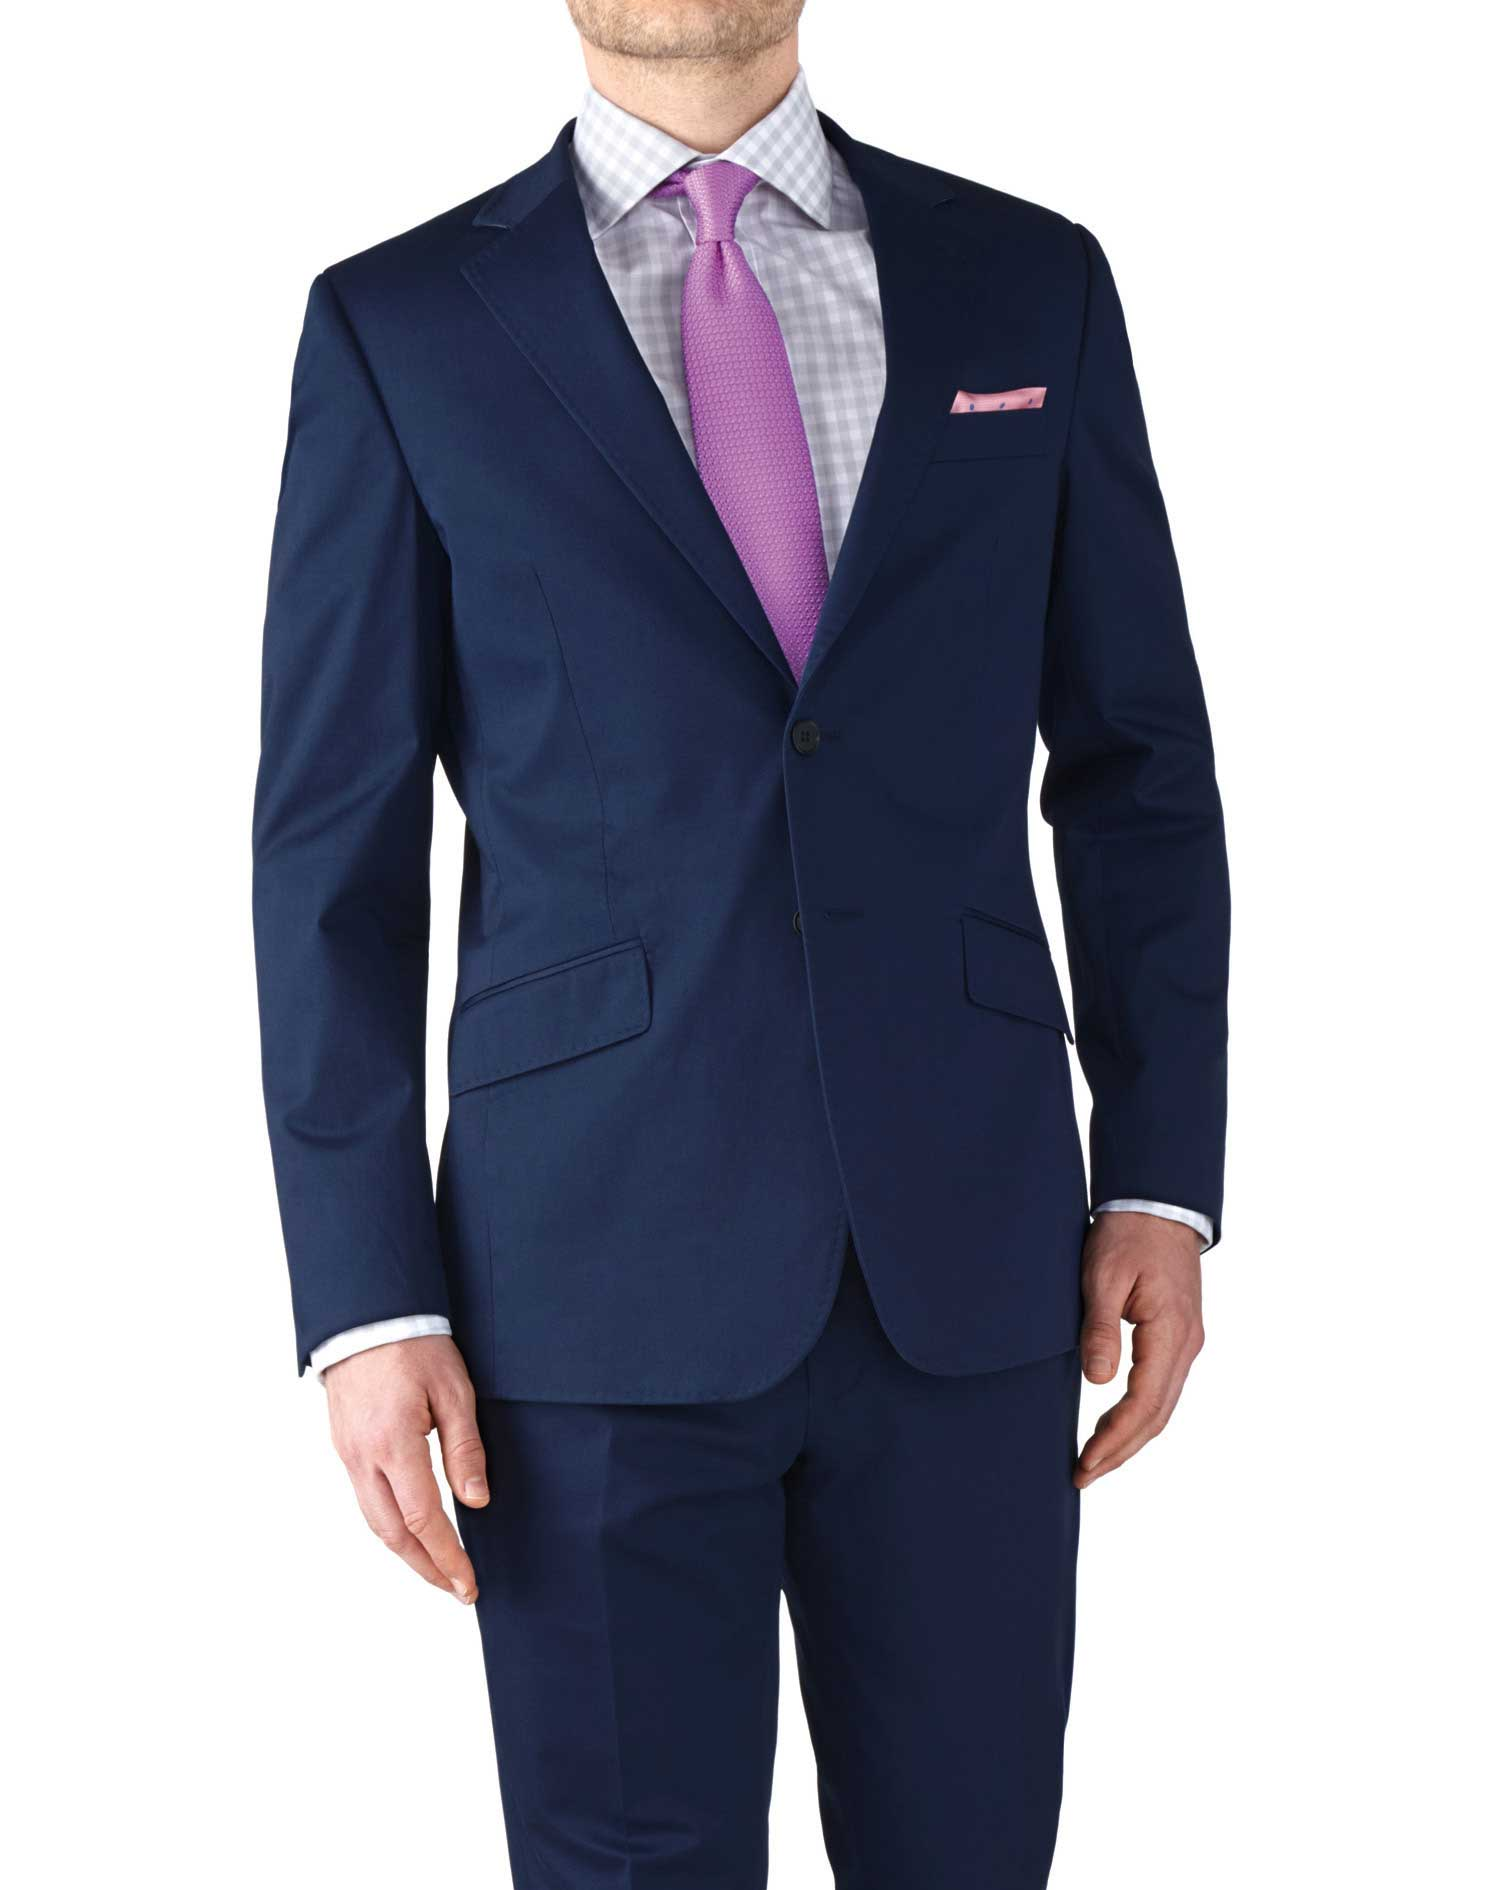 Navy Slim Fit Italian Cotton Business Suit Jacket Size 42 Long by Charles Tyrwhitt